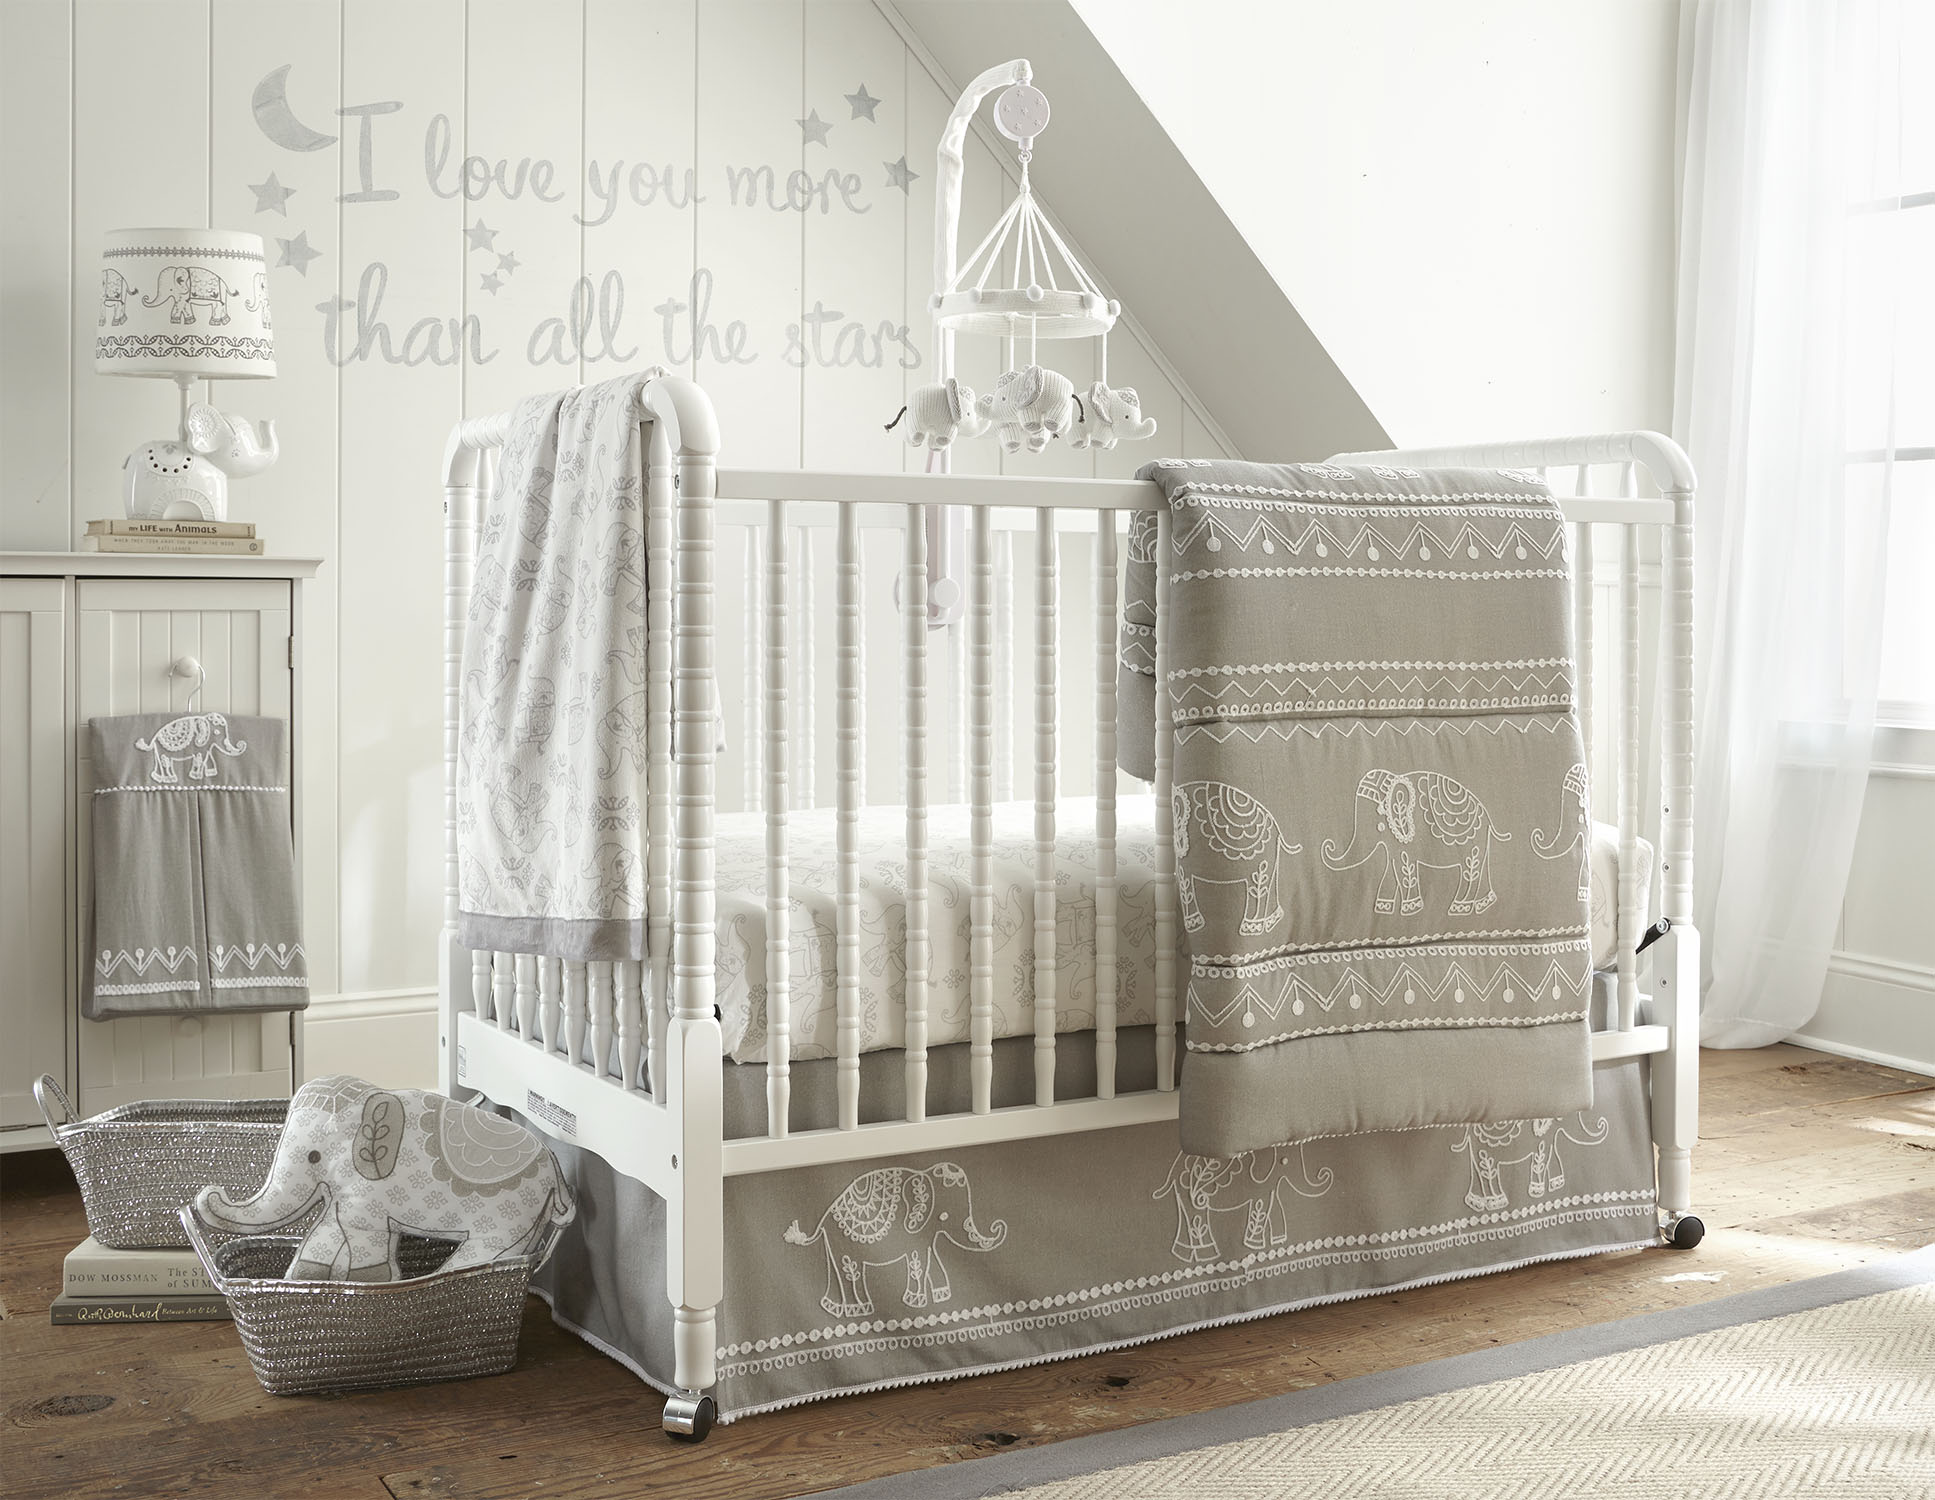 Mobile for crib babies r us - Levtex Baby On Twitter Check Out Our Baby Ely Collection Exclusively At Babiesrus Baby Christmasgifts Bedding Cute Decor Elephant